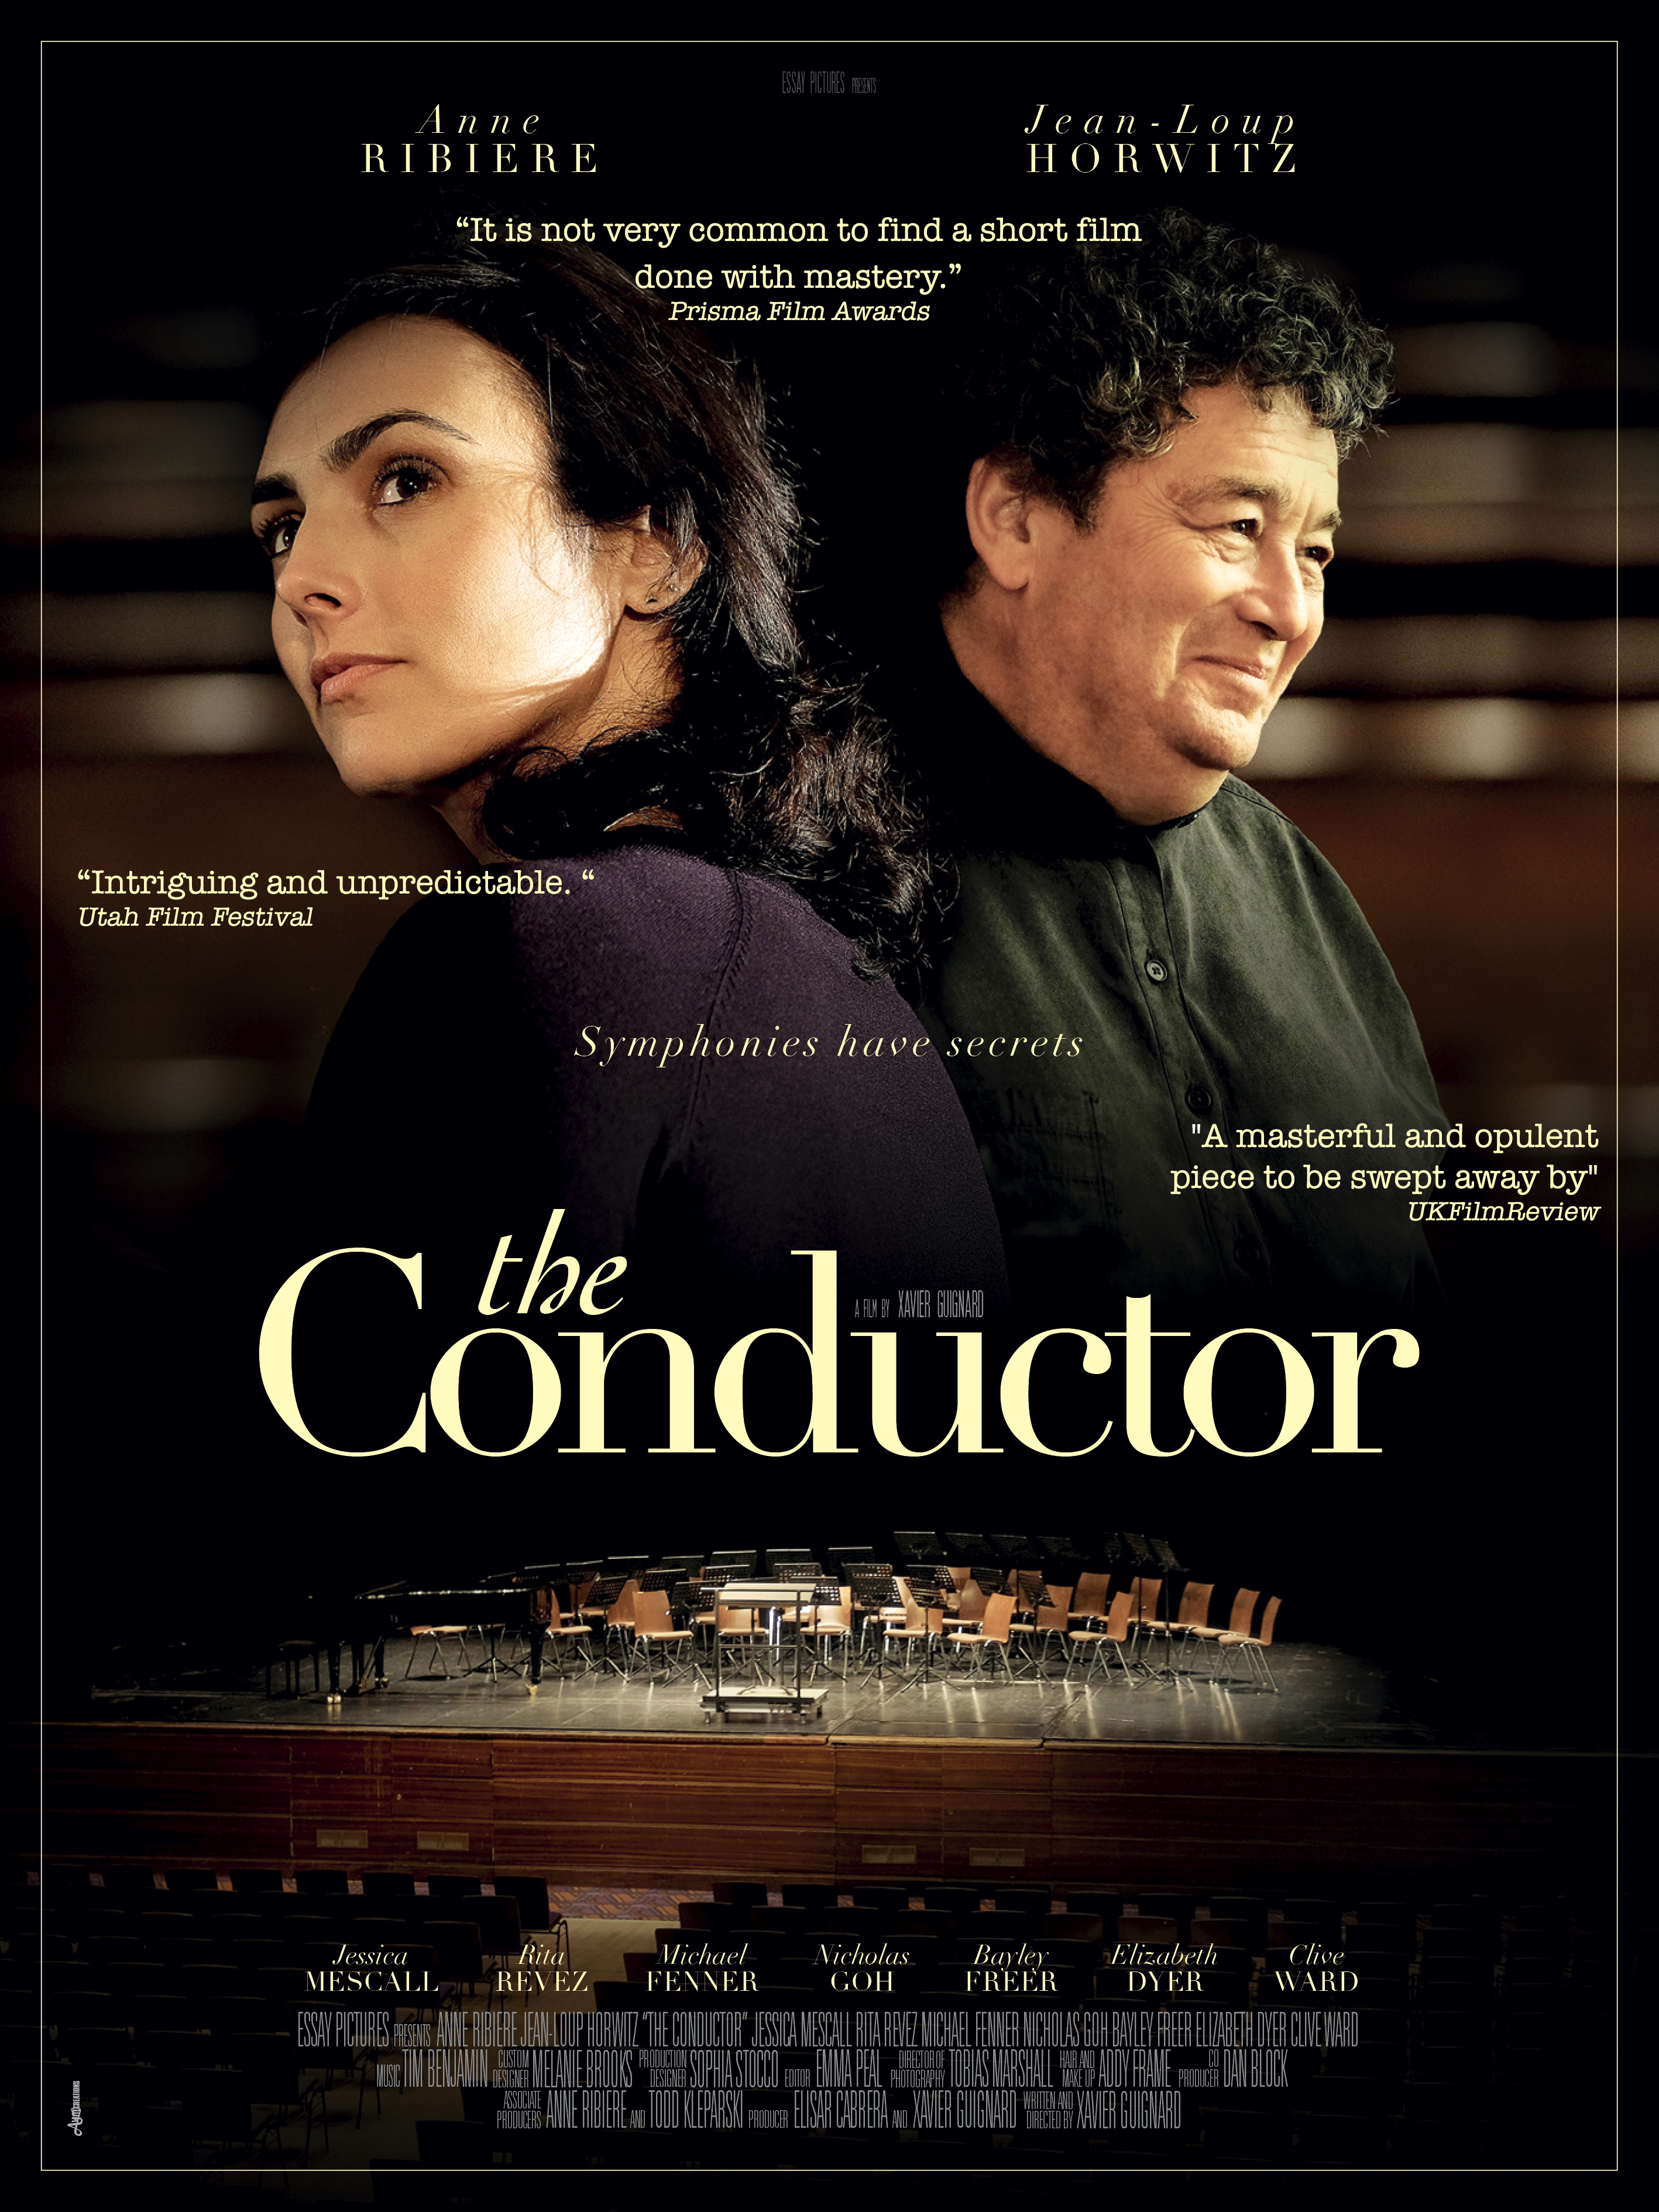 THE CONDUCTOR [with review]